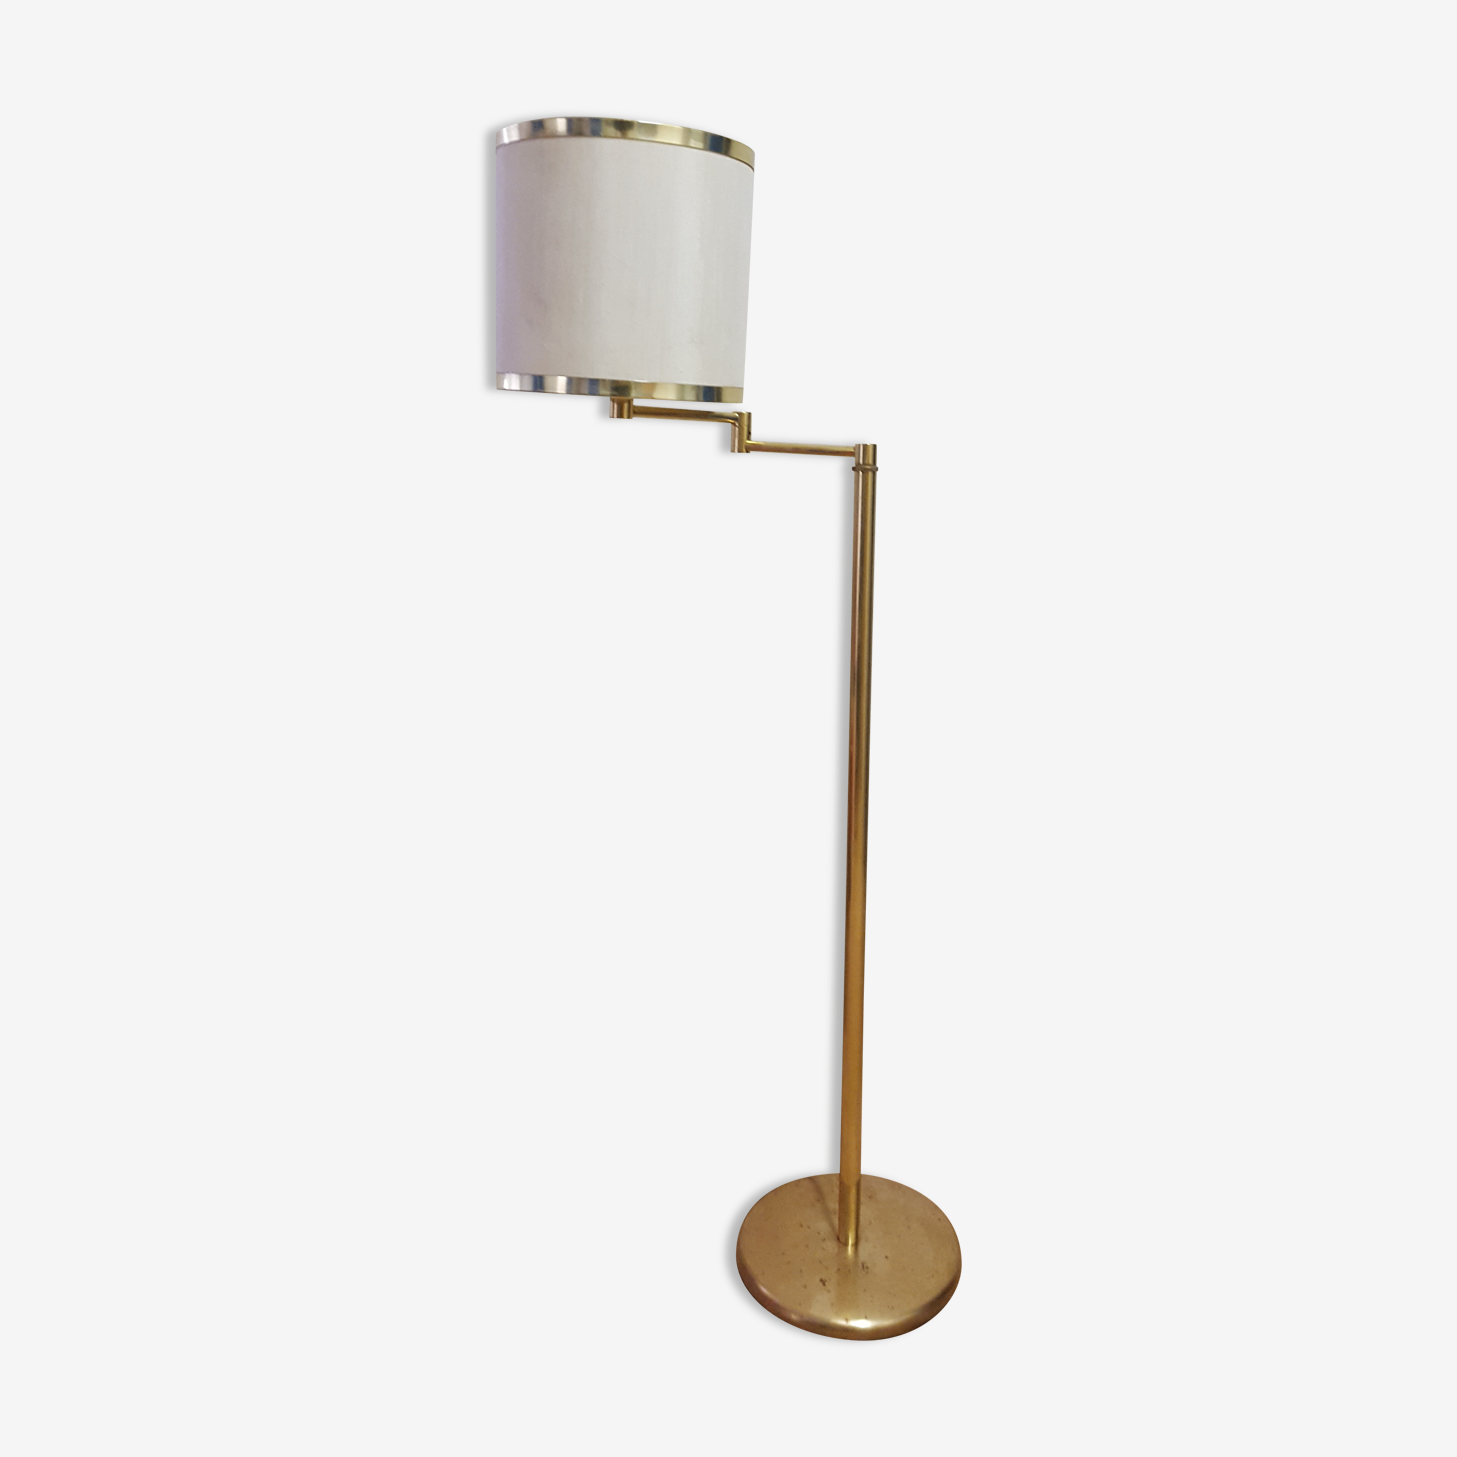 Floor lamp metal golden with articulated arm